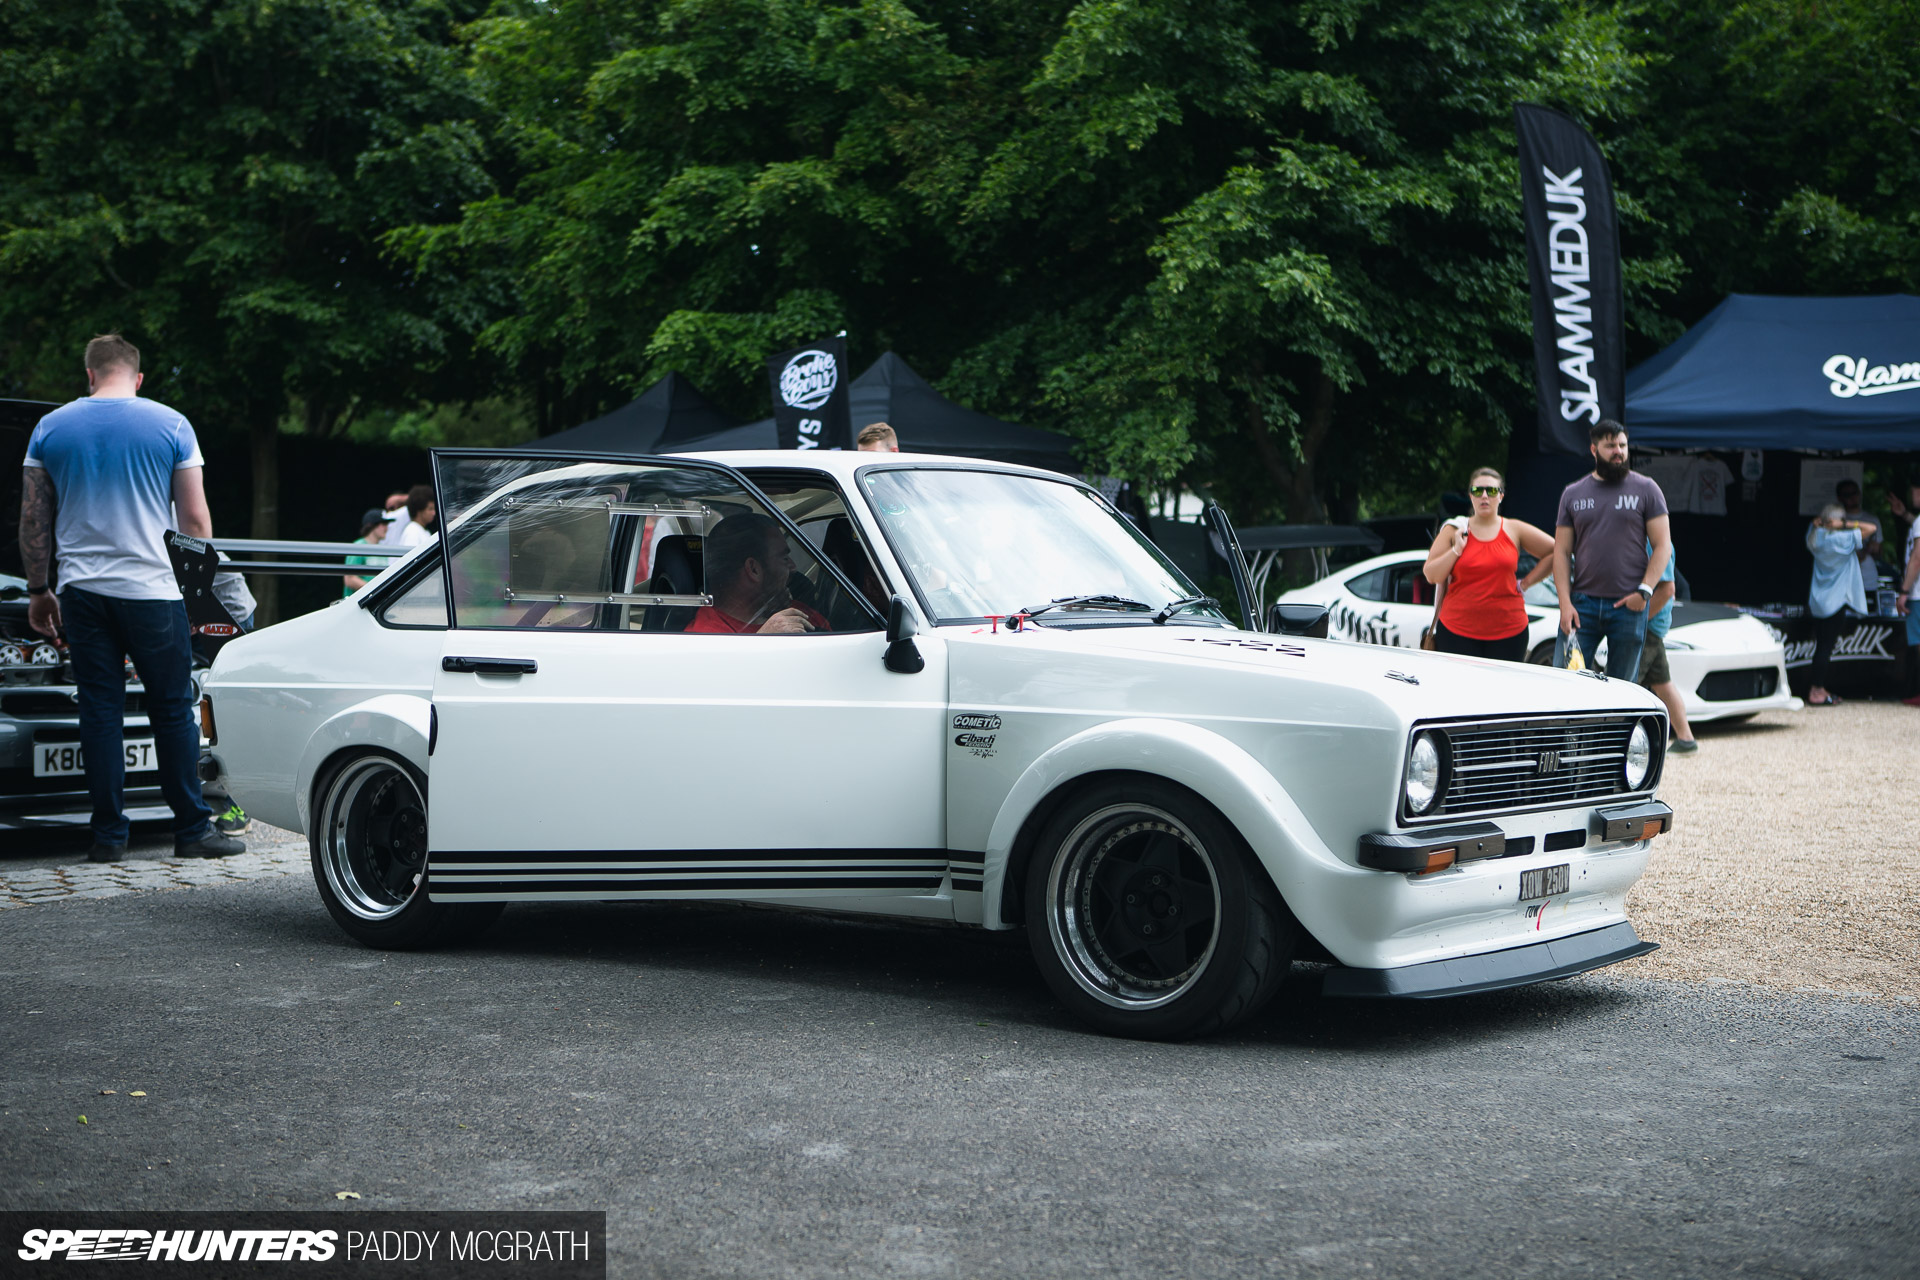 535hp In A MkII Escort